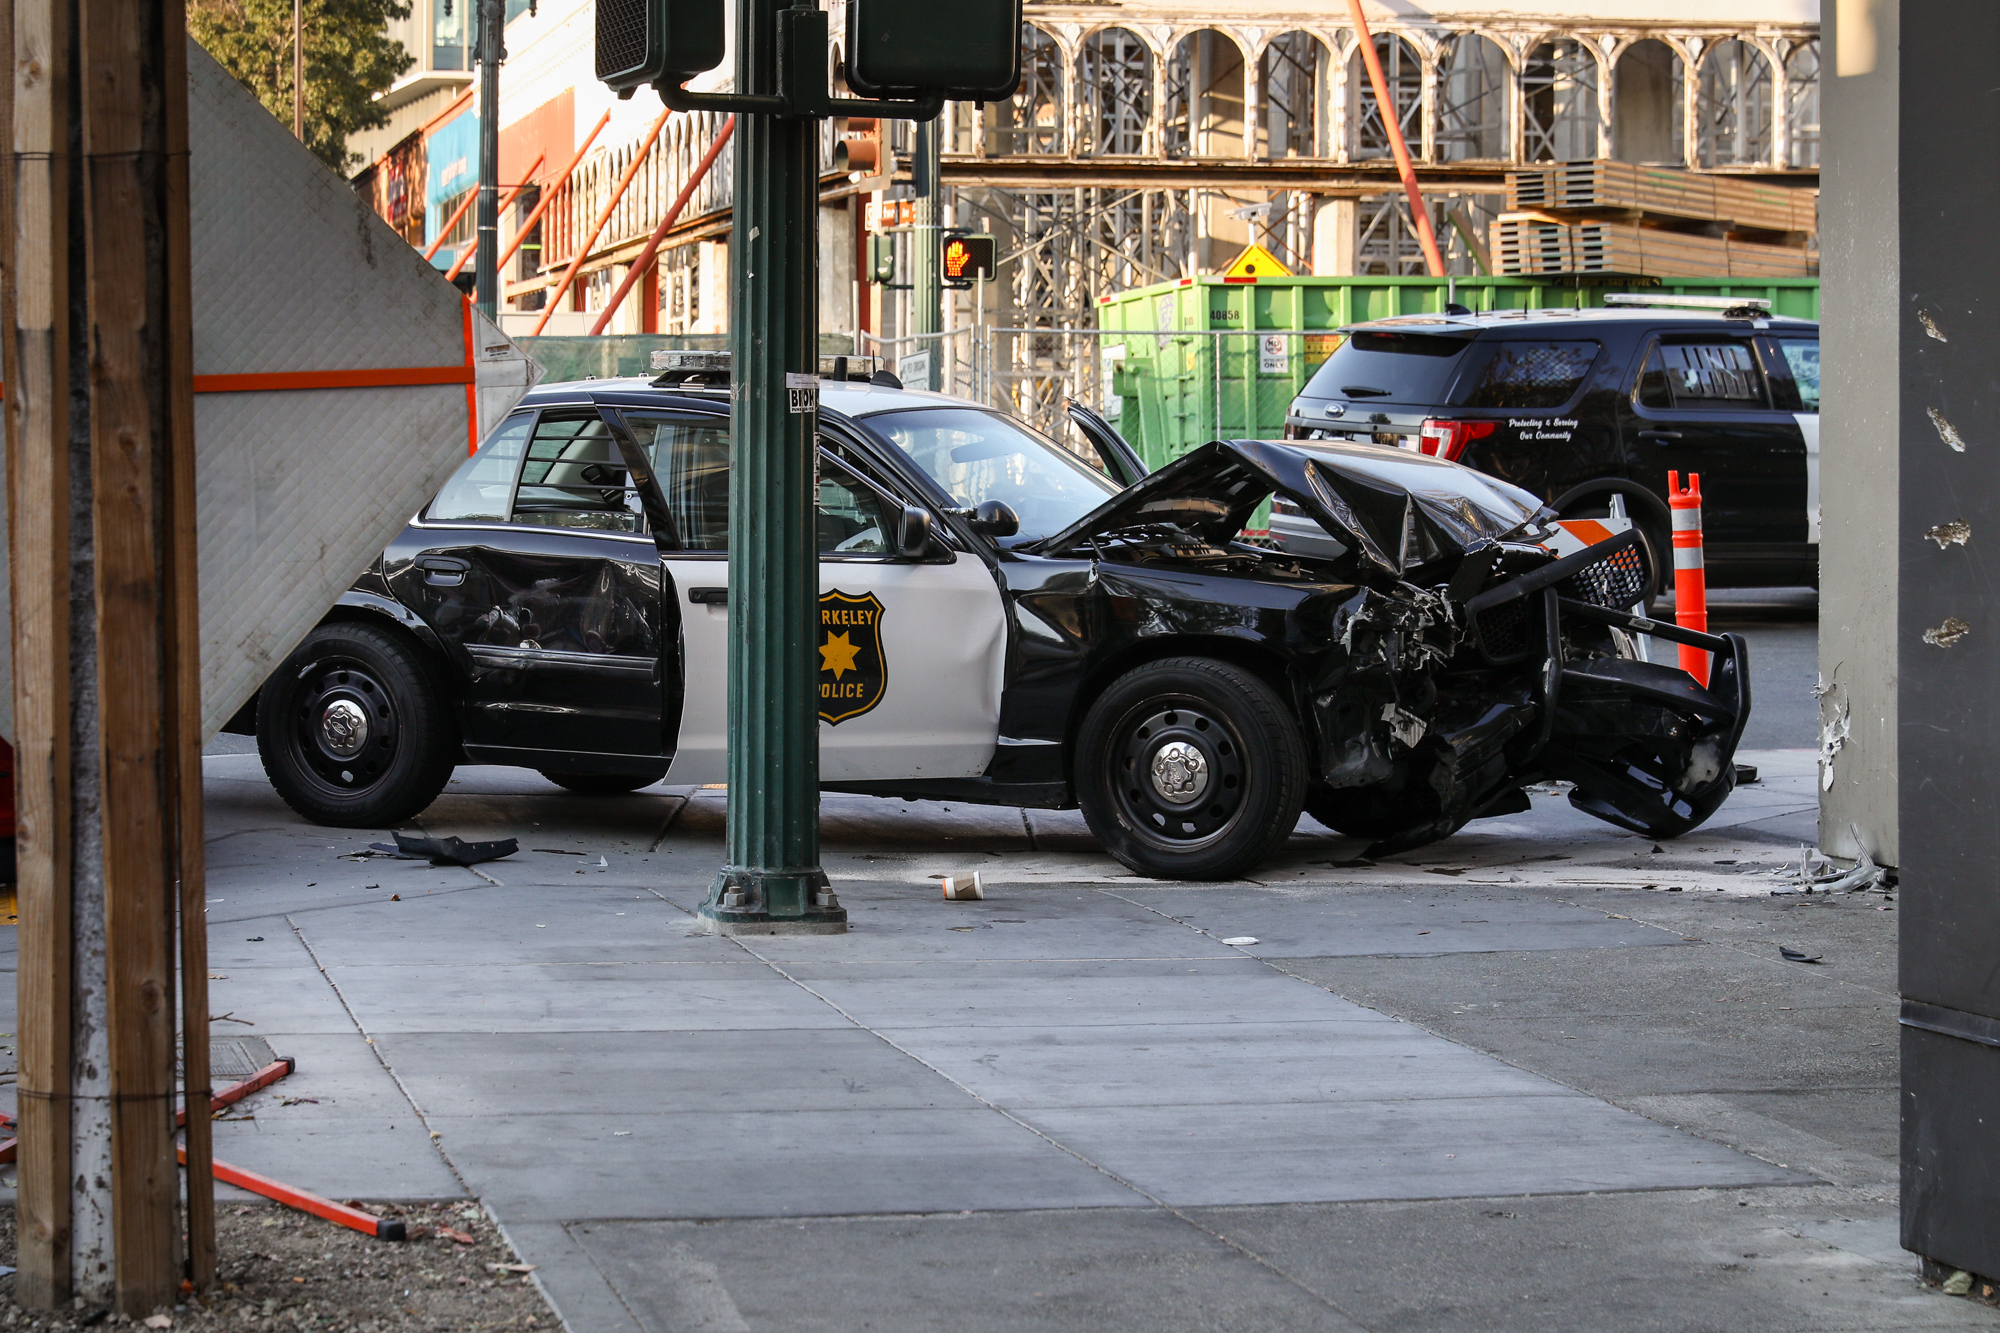 A BPD police cruiser was involved in a collision at the intersection of University and Shattuck on Friday, Oct. 25. Photo: Kelly Sullivan